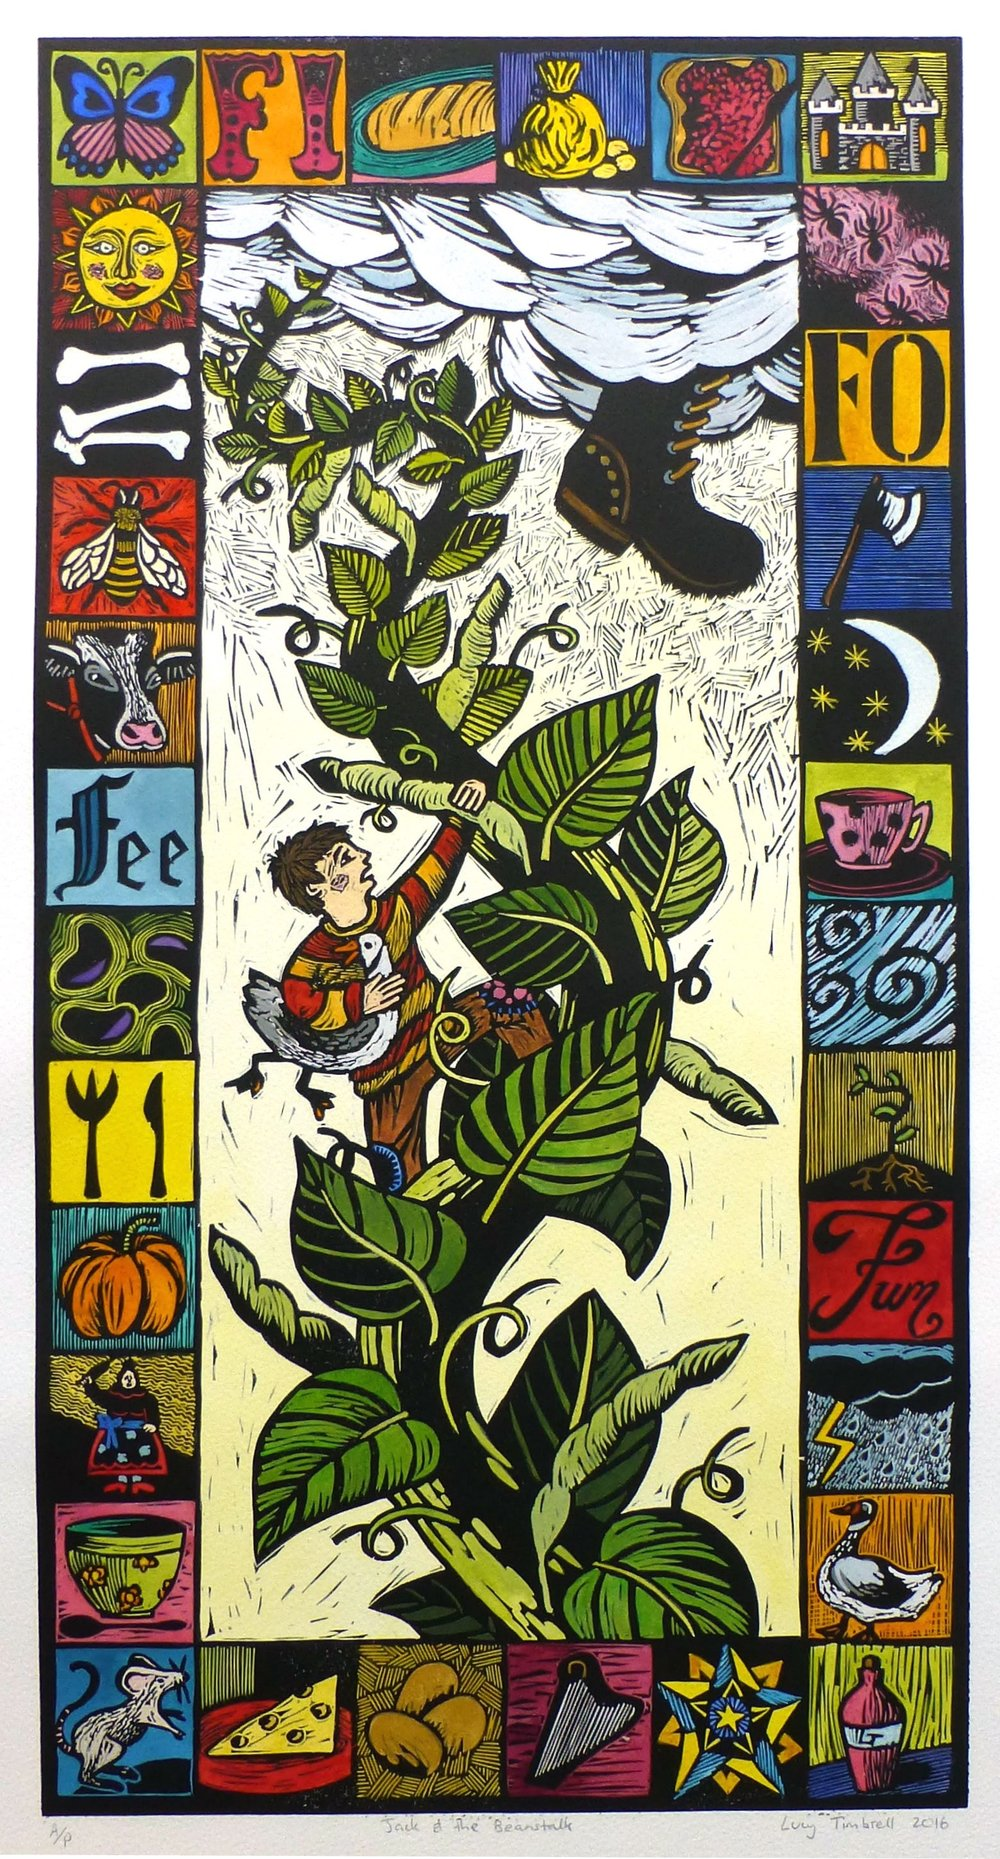 Jack and the Beanstalk   Hand coloured linocut, 2016  Edition of 15  Image size: 61 cm x 31 cm  Paper size: 76 cm x 43 cm  $300